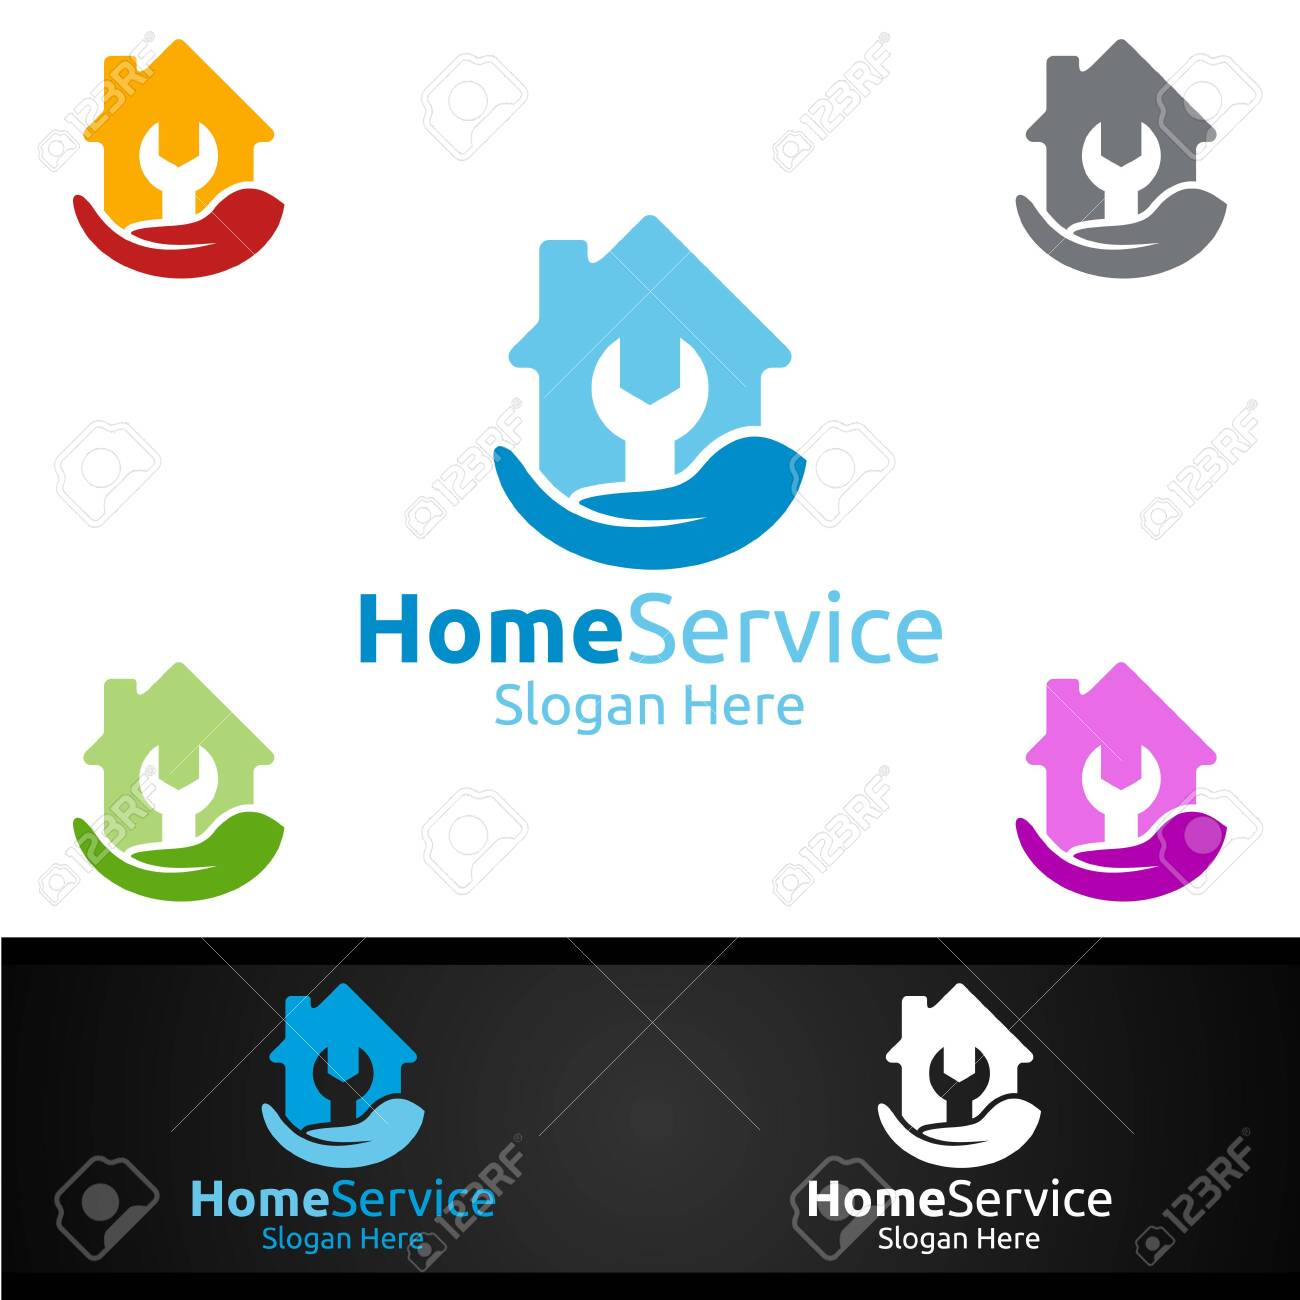 Real Estate And Fix Home Repair Services Logo Design Royalty Free Cliparts Vectors And Stock Illustration Image 153741833